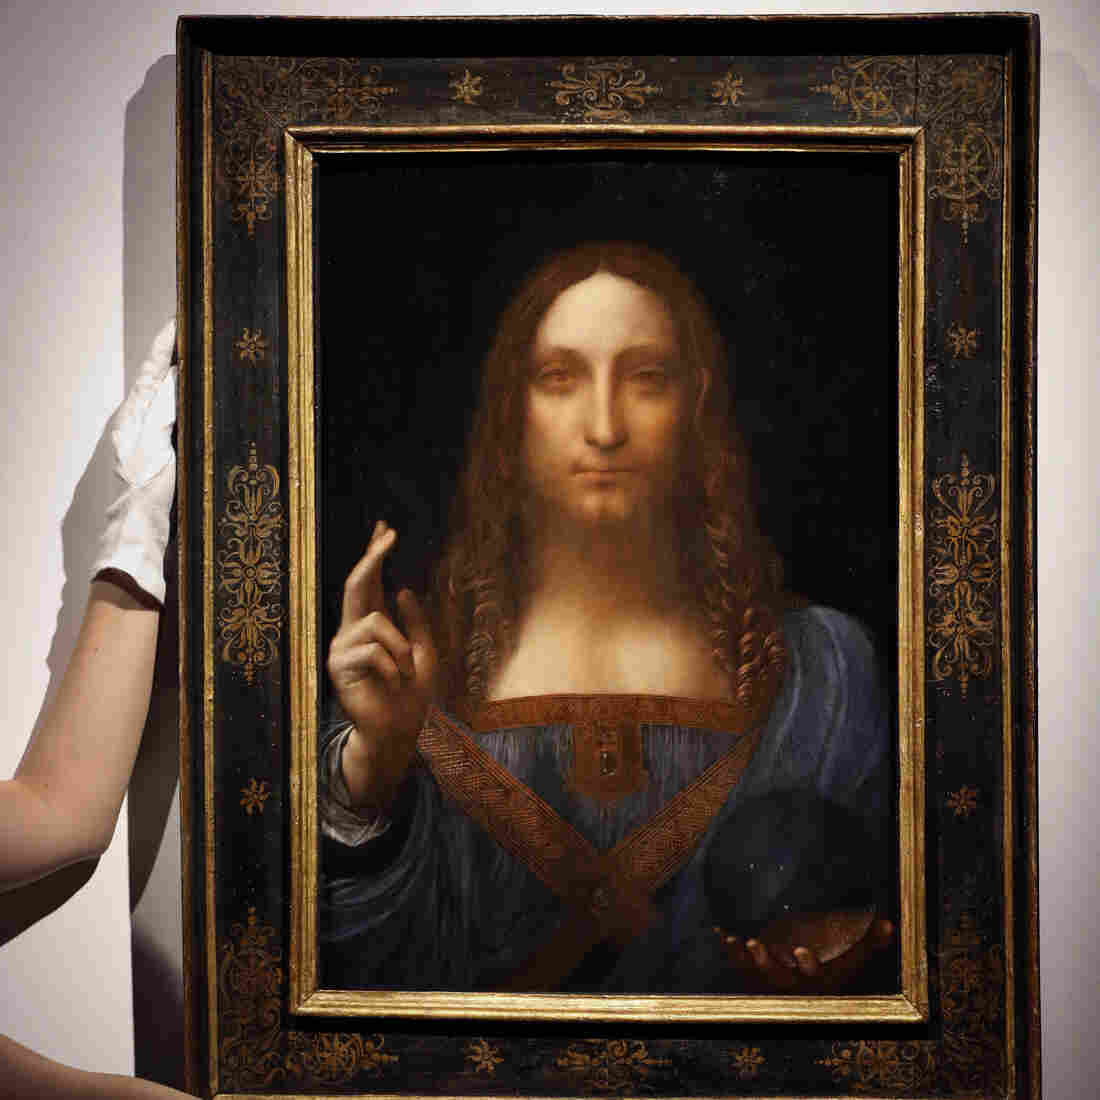 Leonardo da Vinci Painting Sells for $450.3 Million, Shattering Auction Records